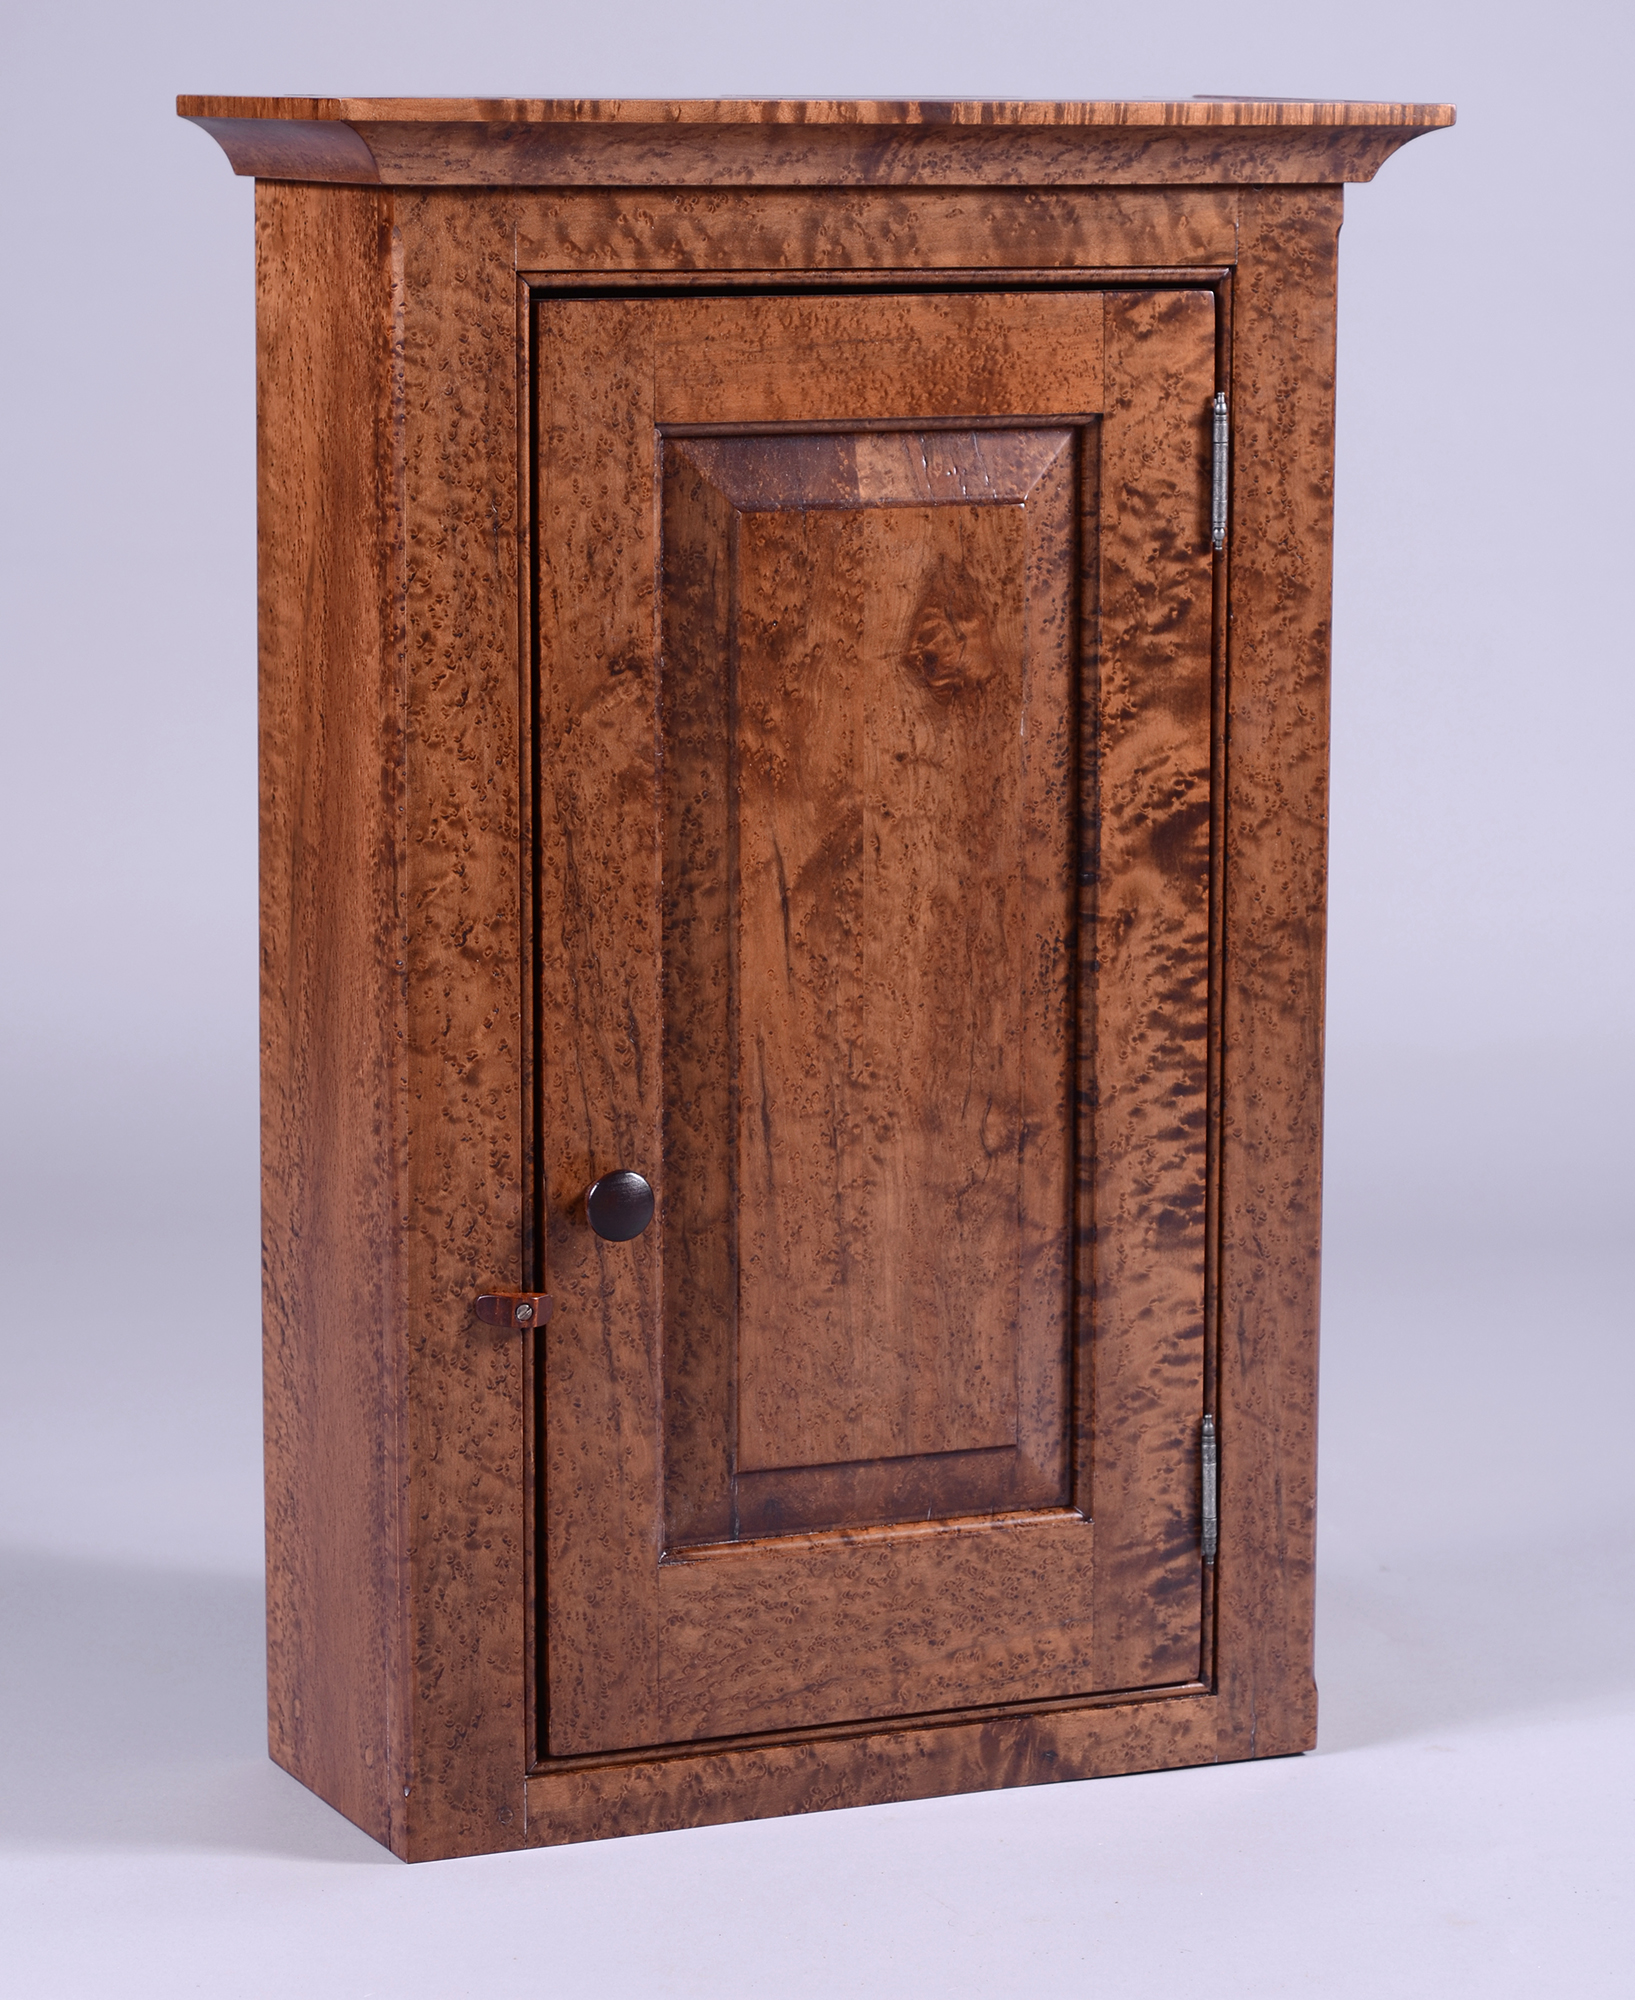 kloes, custom, woodwork, cupboard, cabinet, tables